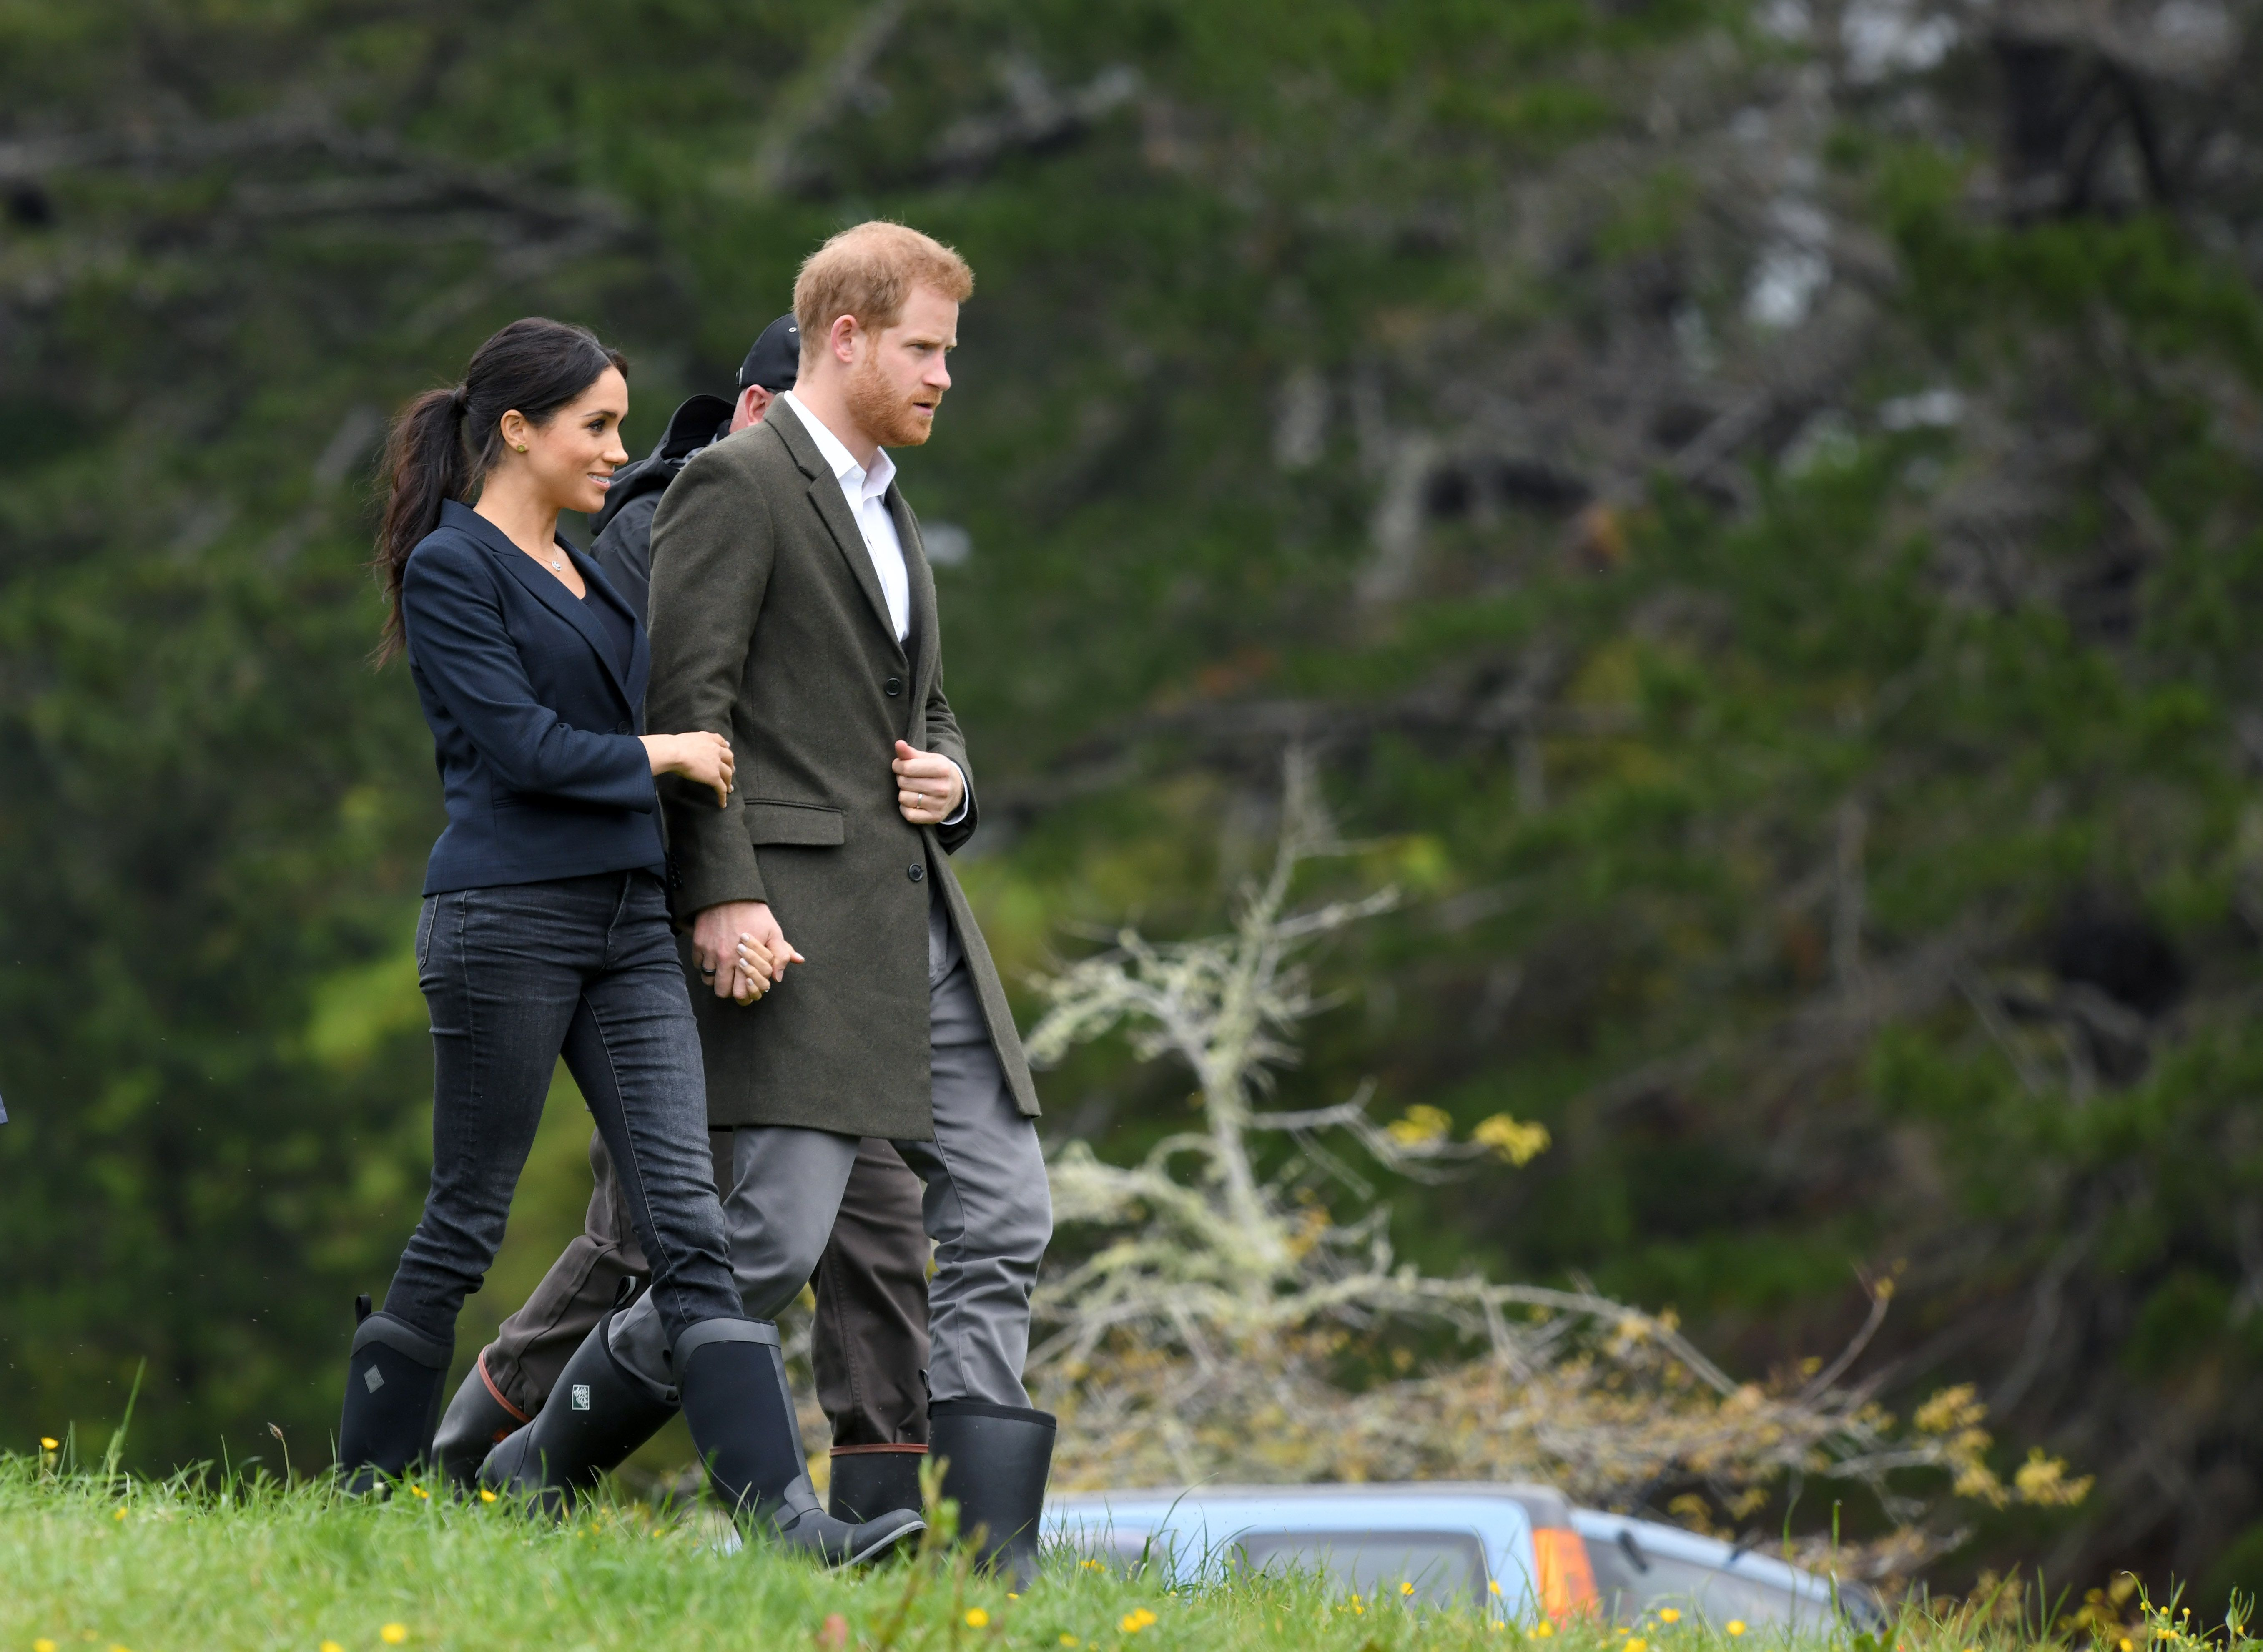 fbe0a7d3a235b Meghan Markle's Muck Boots Are Chic and Super Affordable